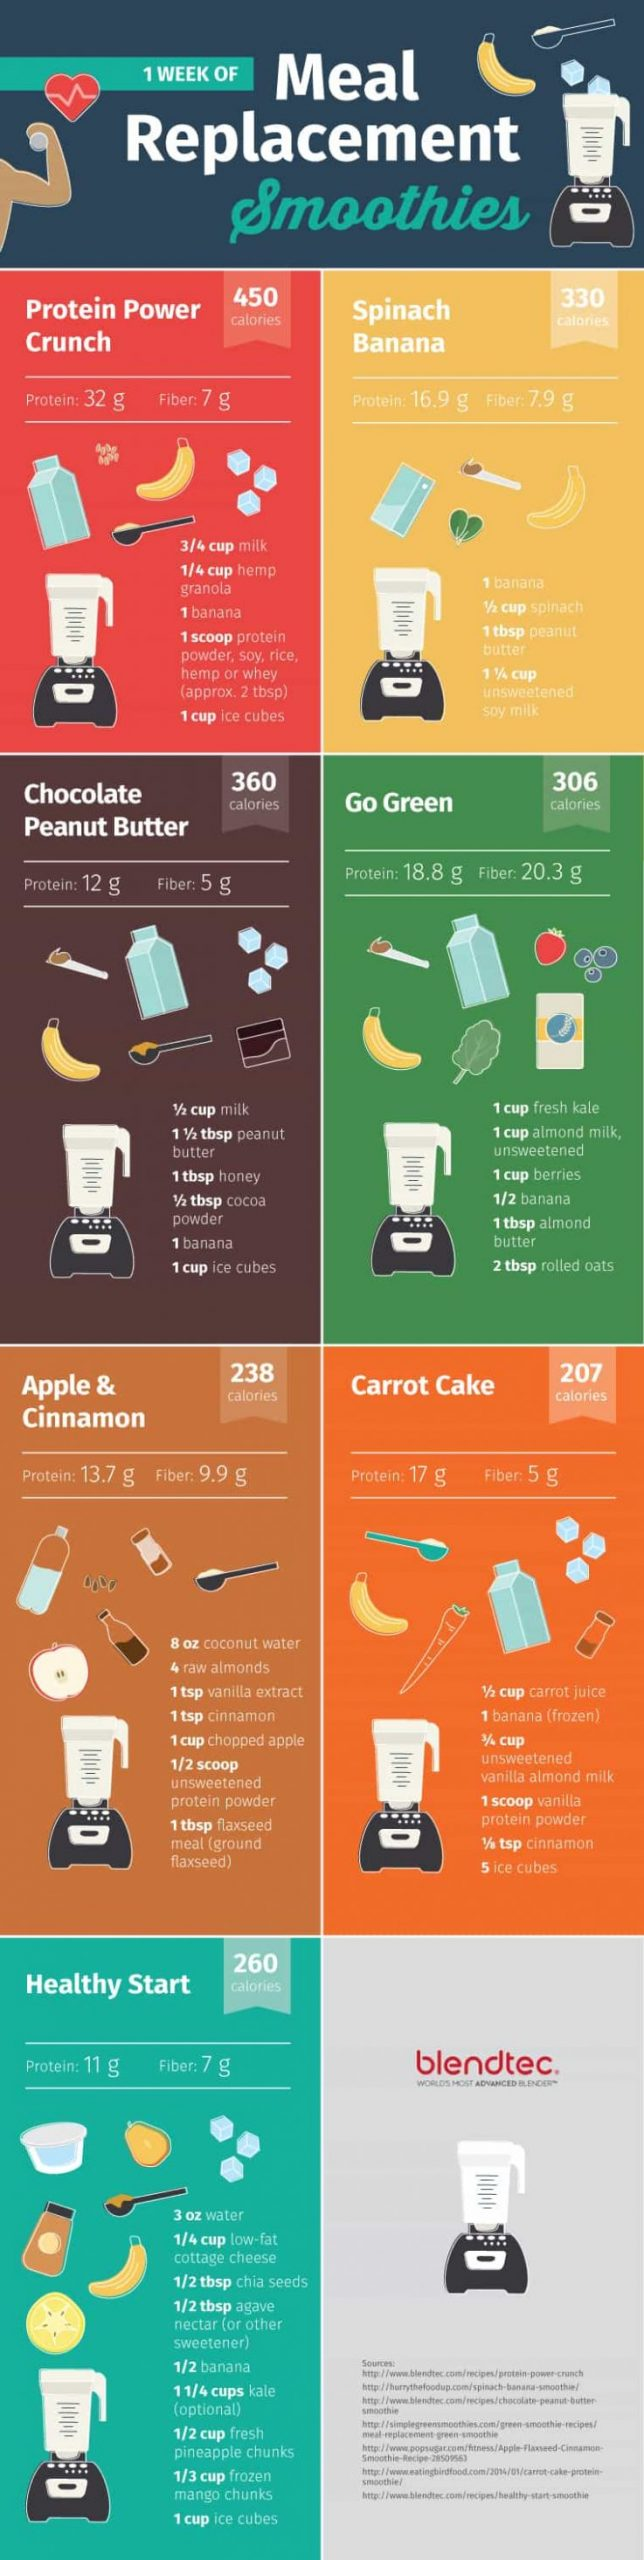 8 Best Weight Loss Protein Shake Recipes | The WHOot